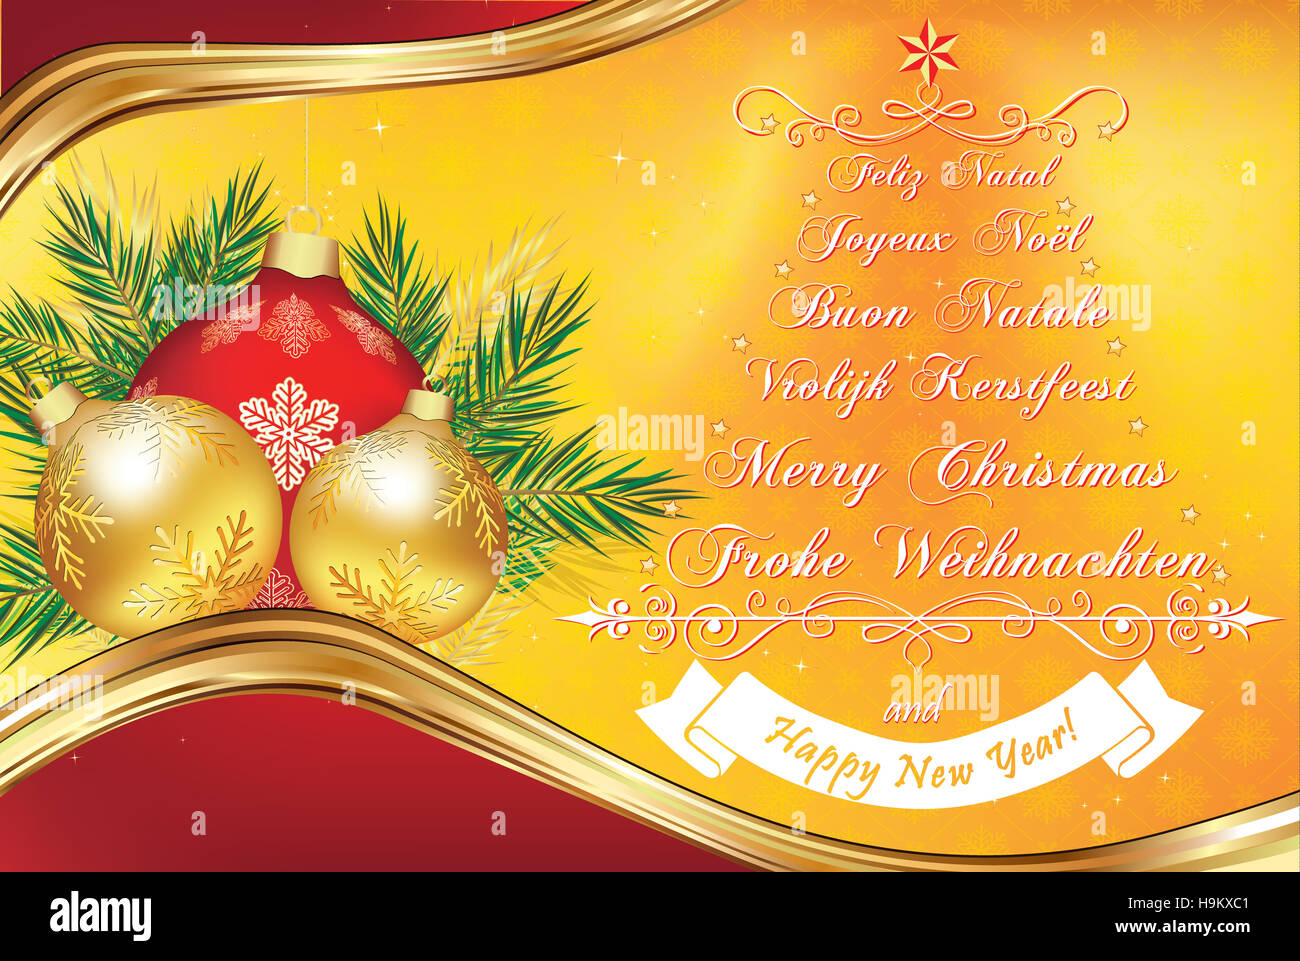 warm new year greeting card in many languages merry christmas in german english dutch italian french and spanish print